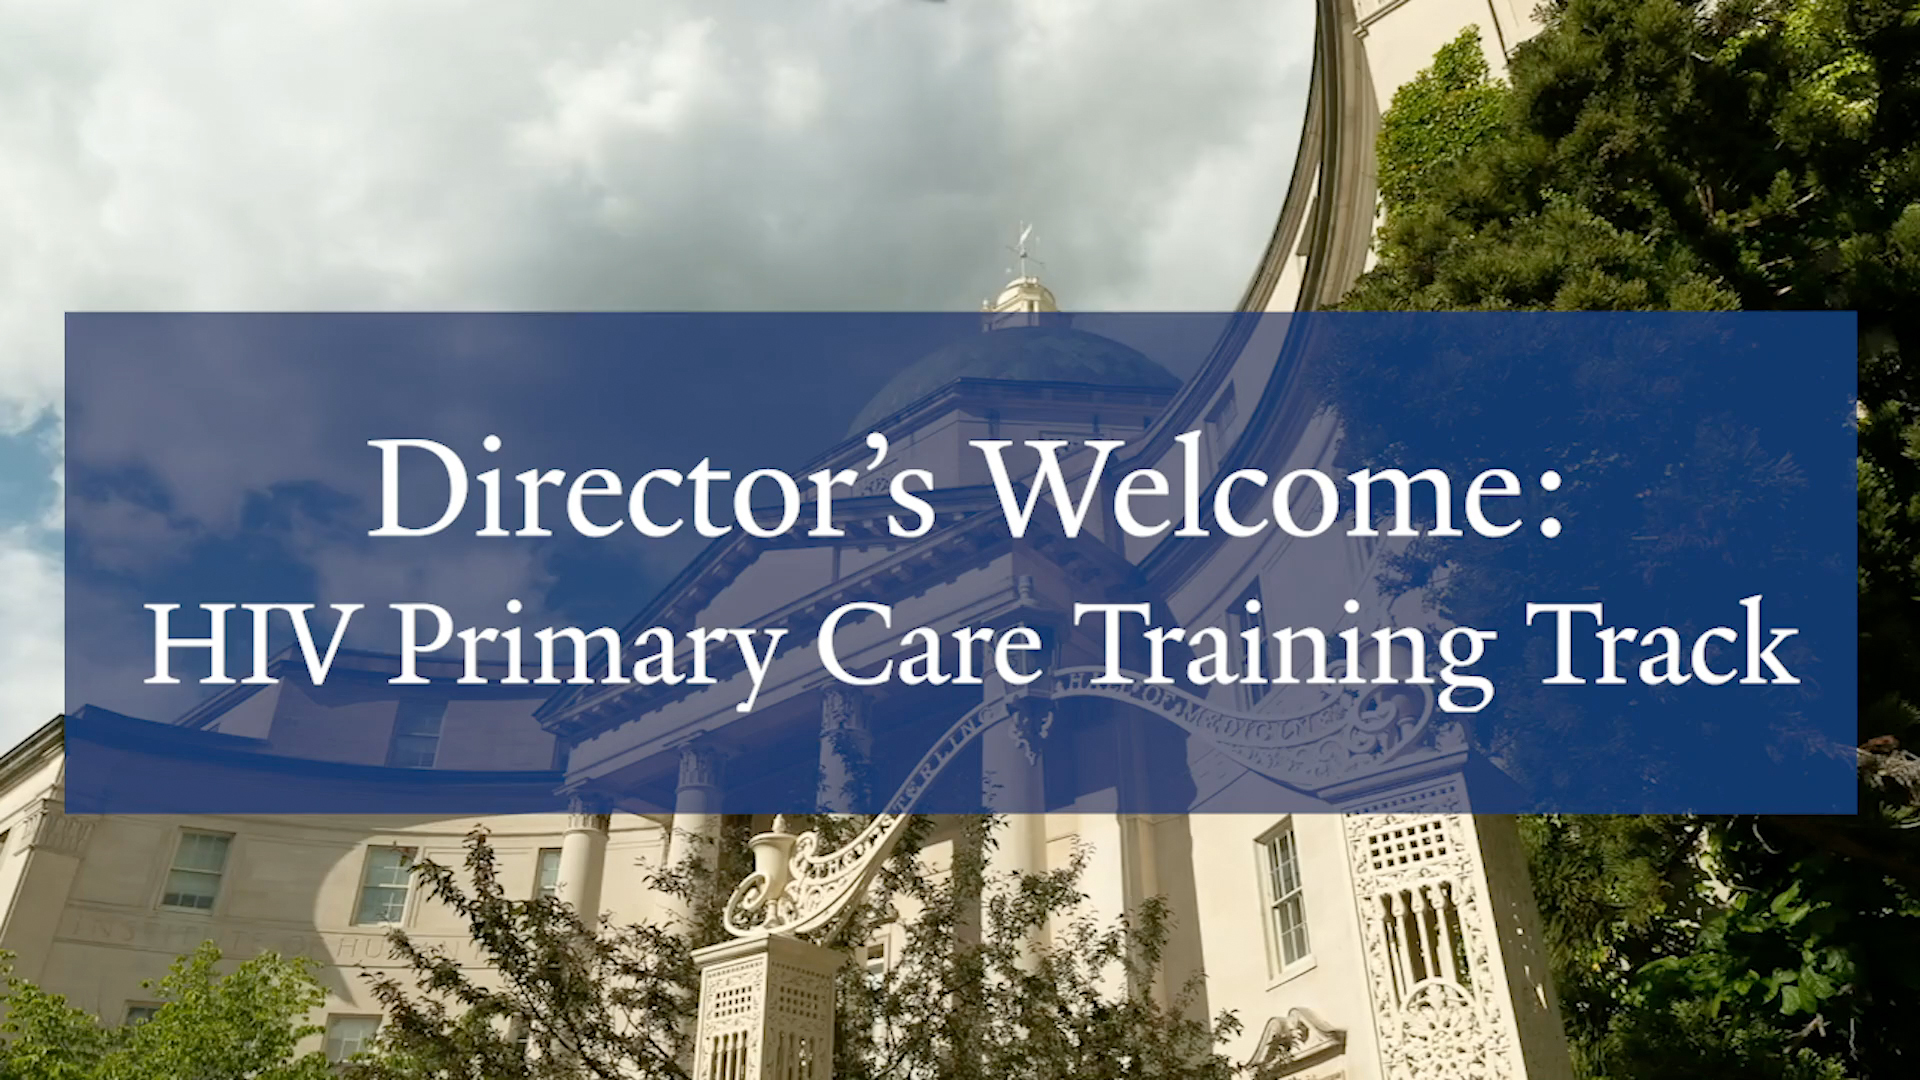 Director's Welcome: HIV Primary Care Training Track